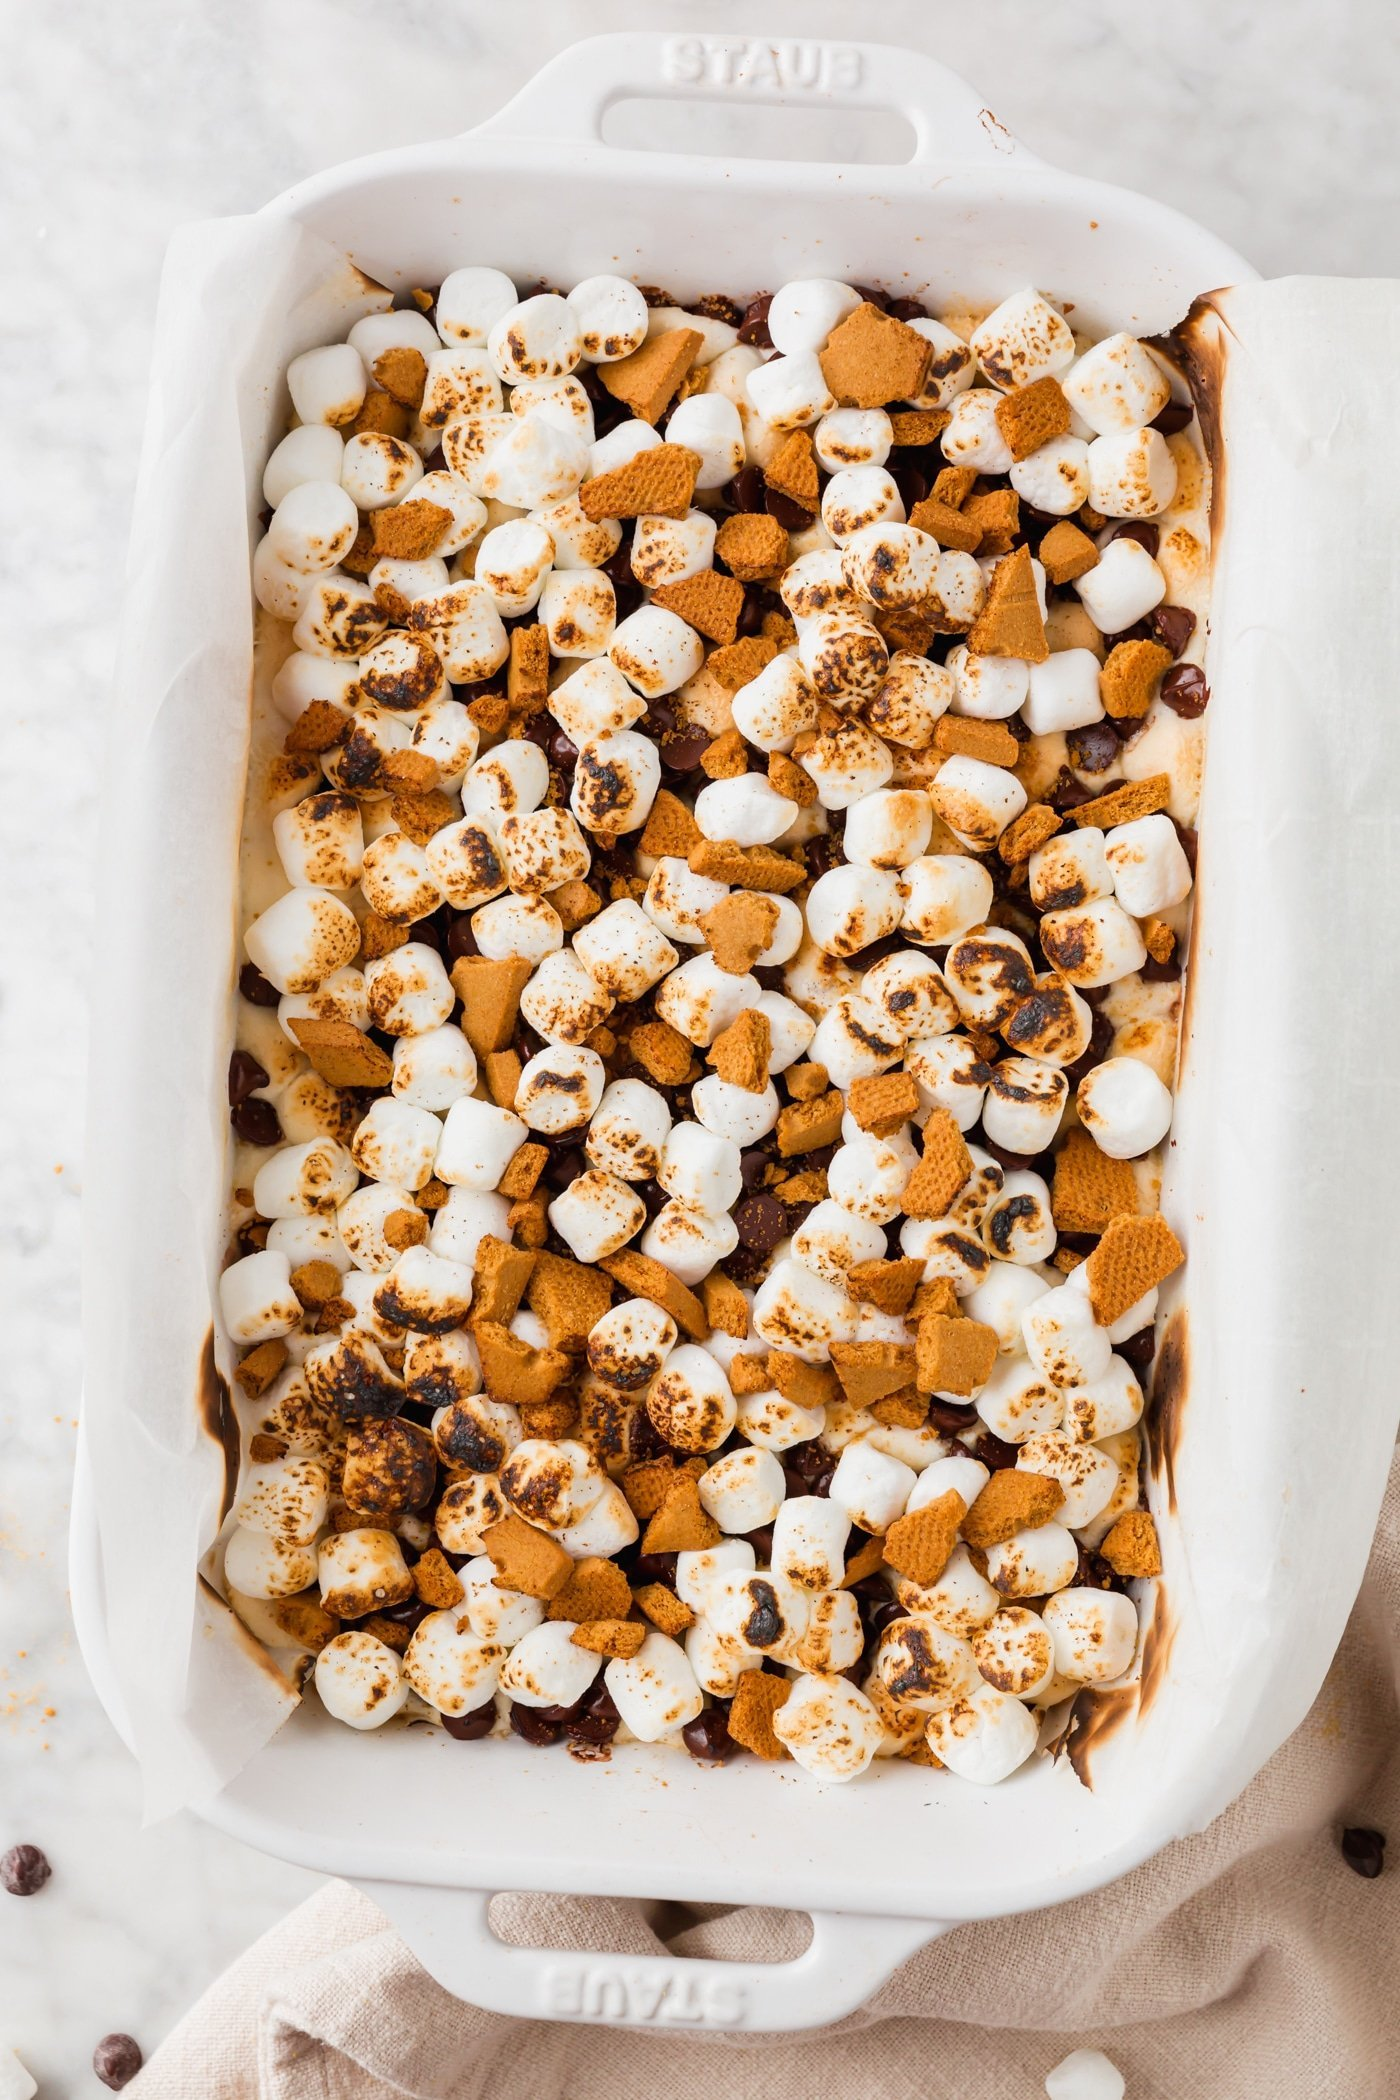 A baking dish filled with s'mores bars that have been toasted with a kitchen torch.